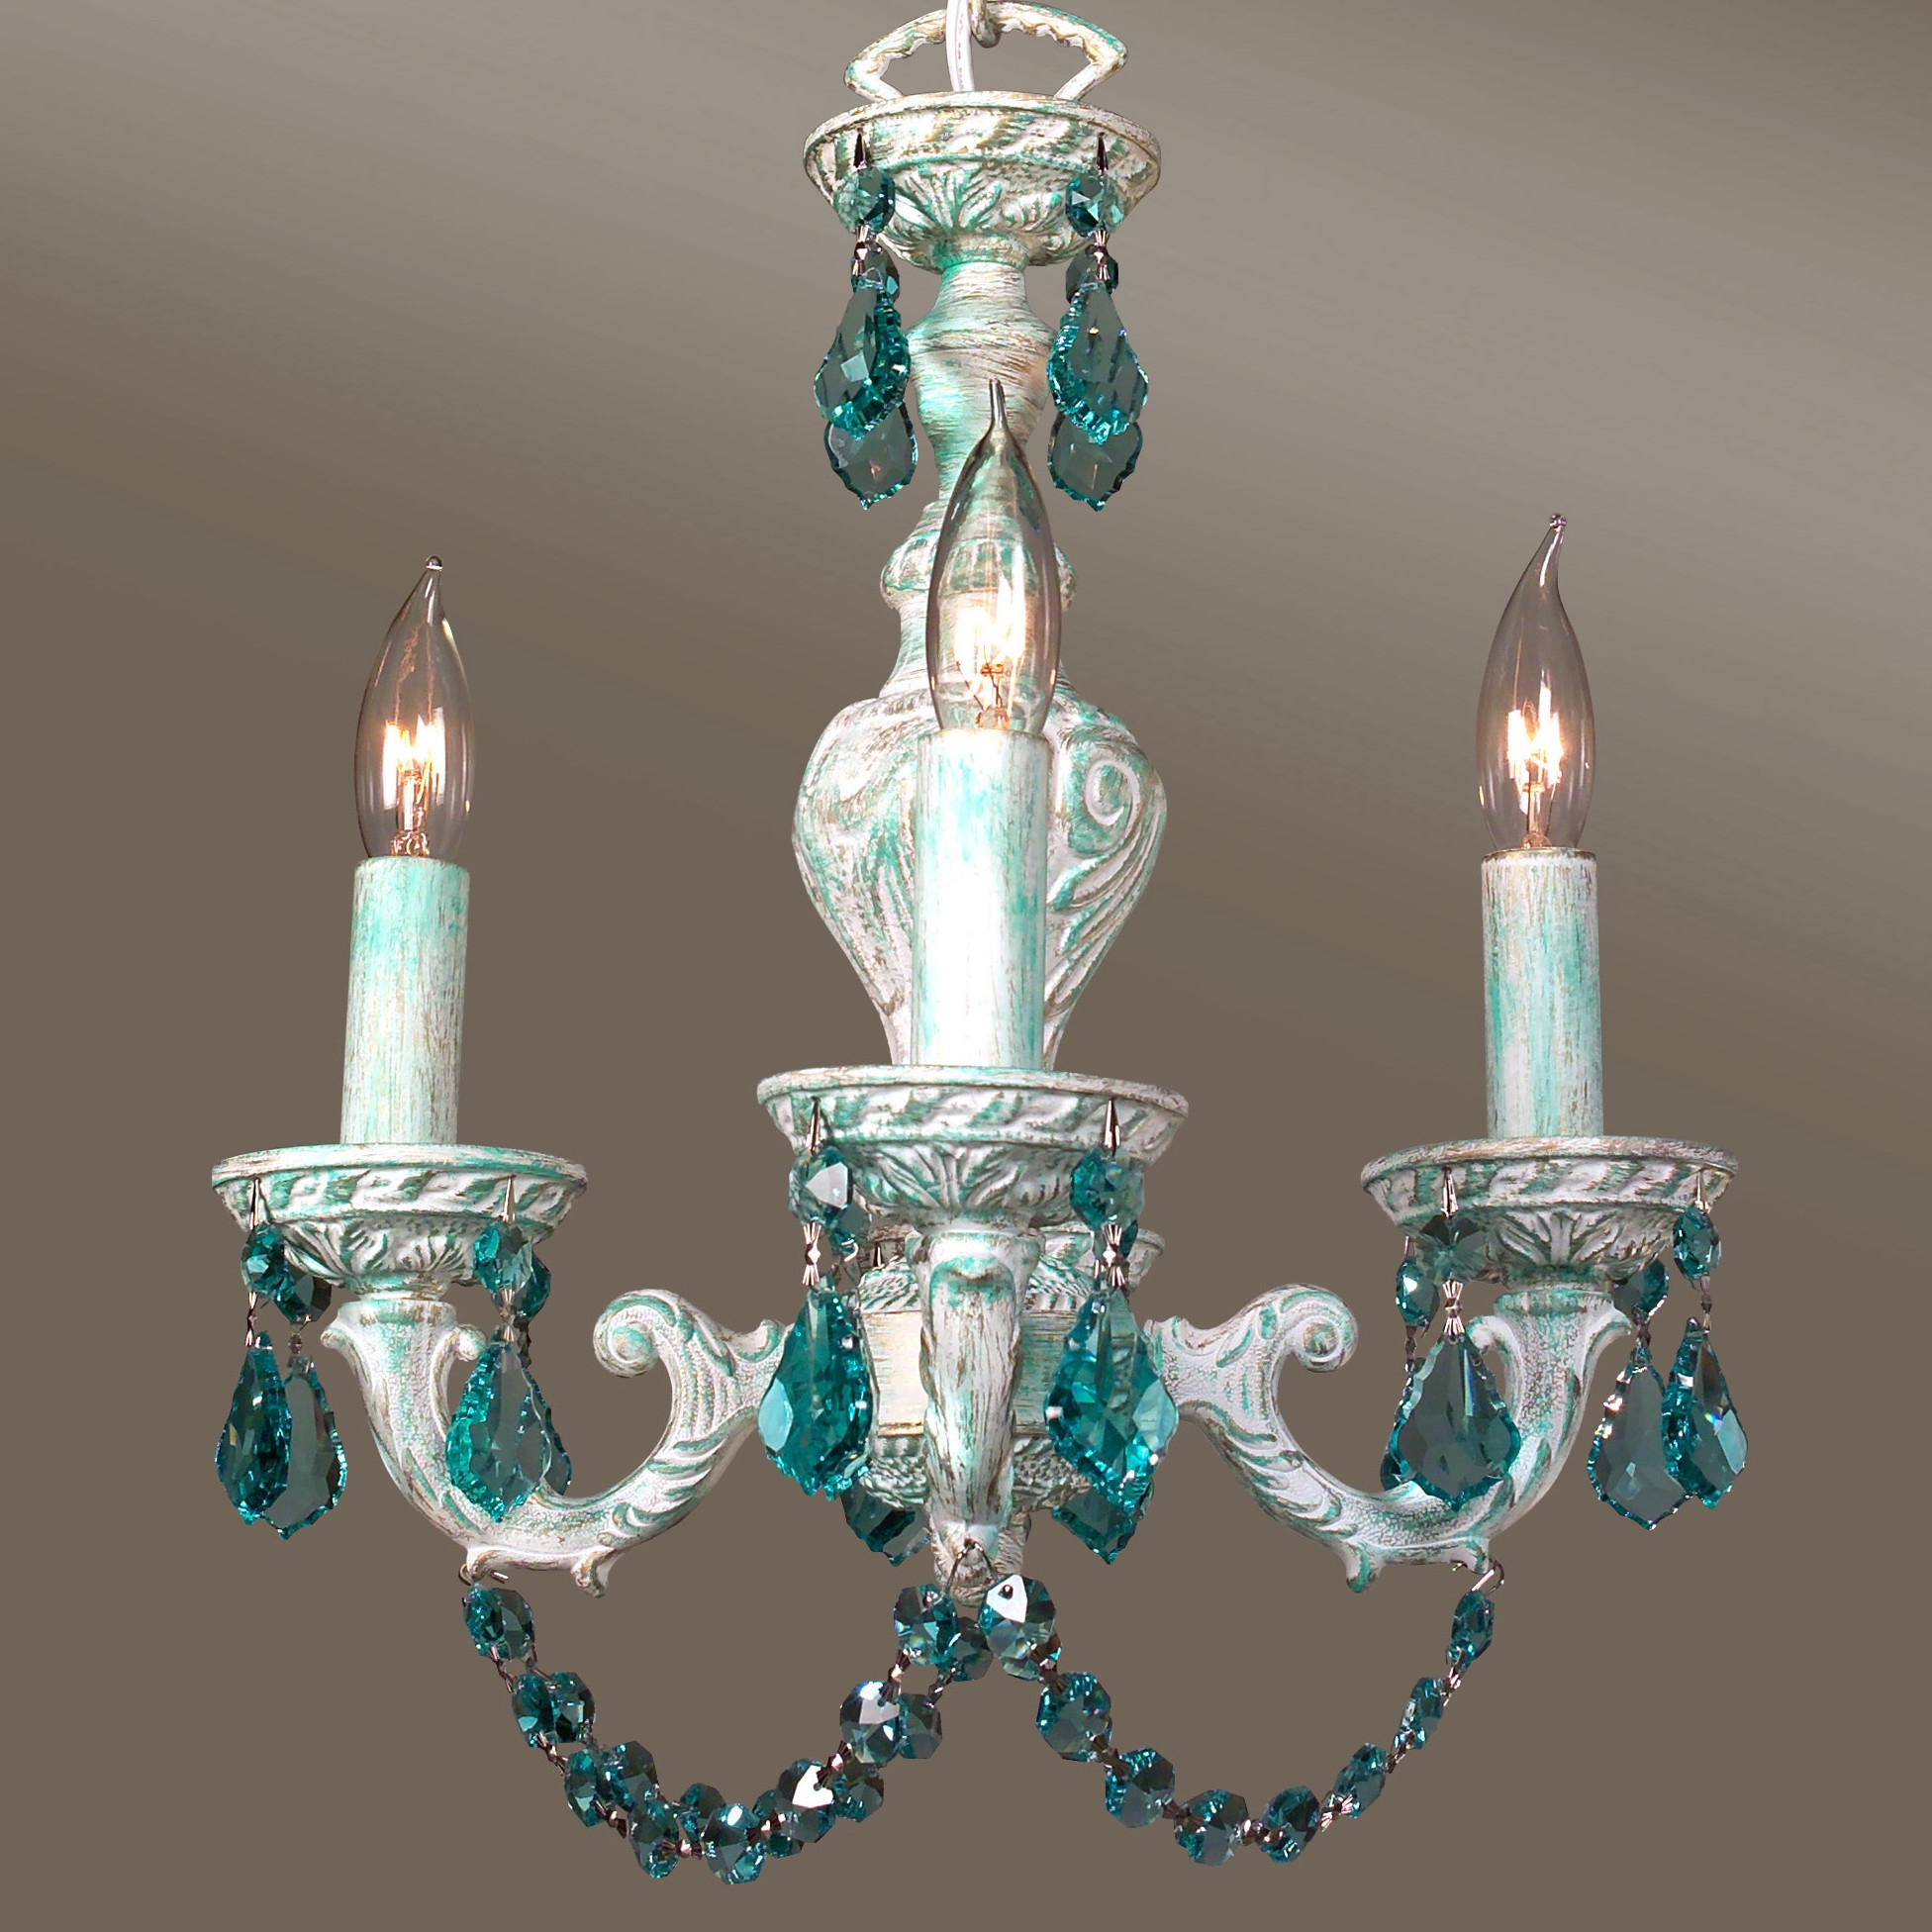 Chandelier Stunning Colored Chandelier Terrific Colored Inside Turquoise Chandelier Crystals (Image 12 of 25)